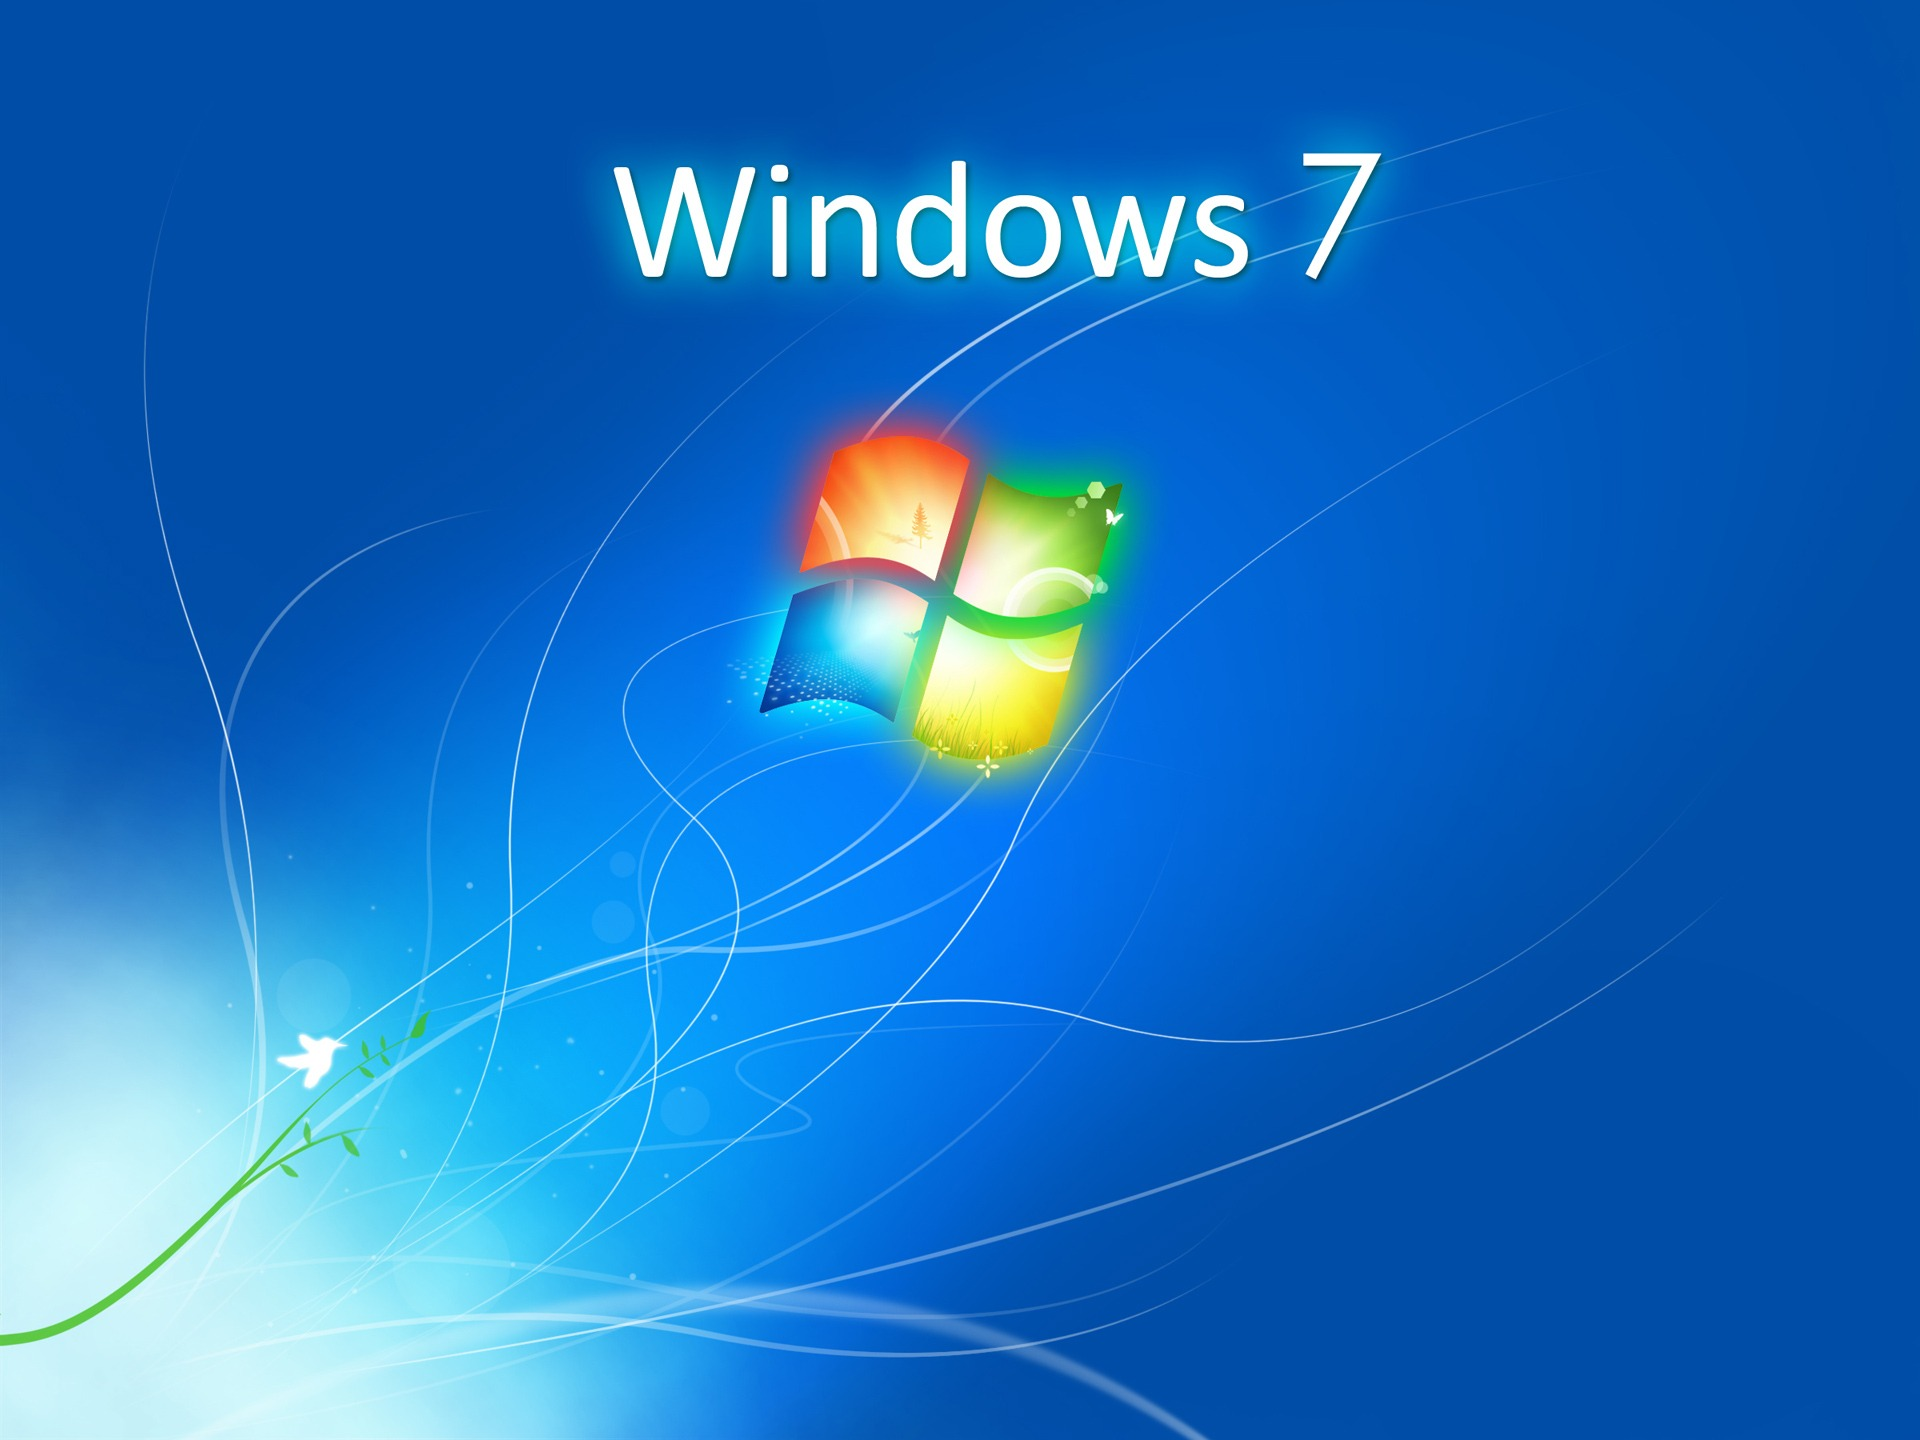 3d wallpaper windows vista wallpapers for free download about (3,481